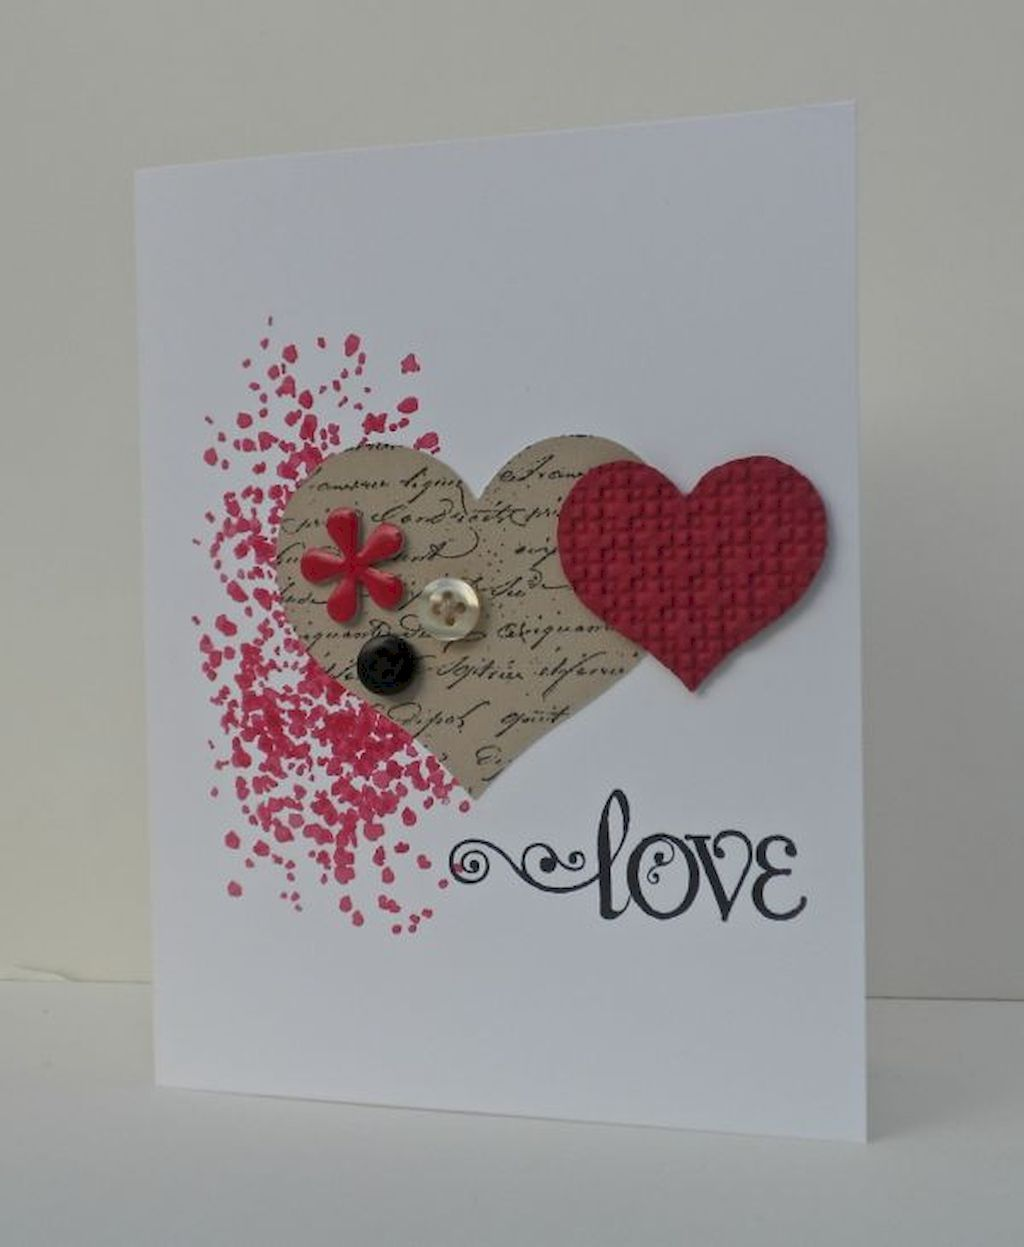 50 romantic valentines cards design ideas cards card ideas and